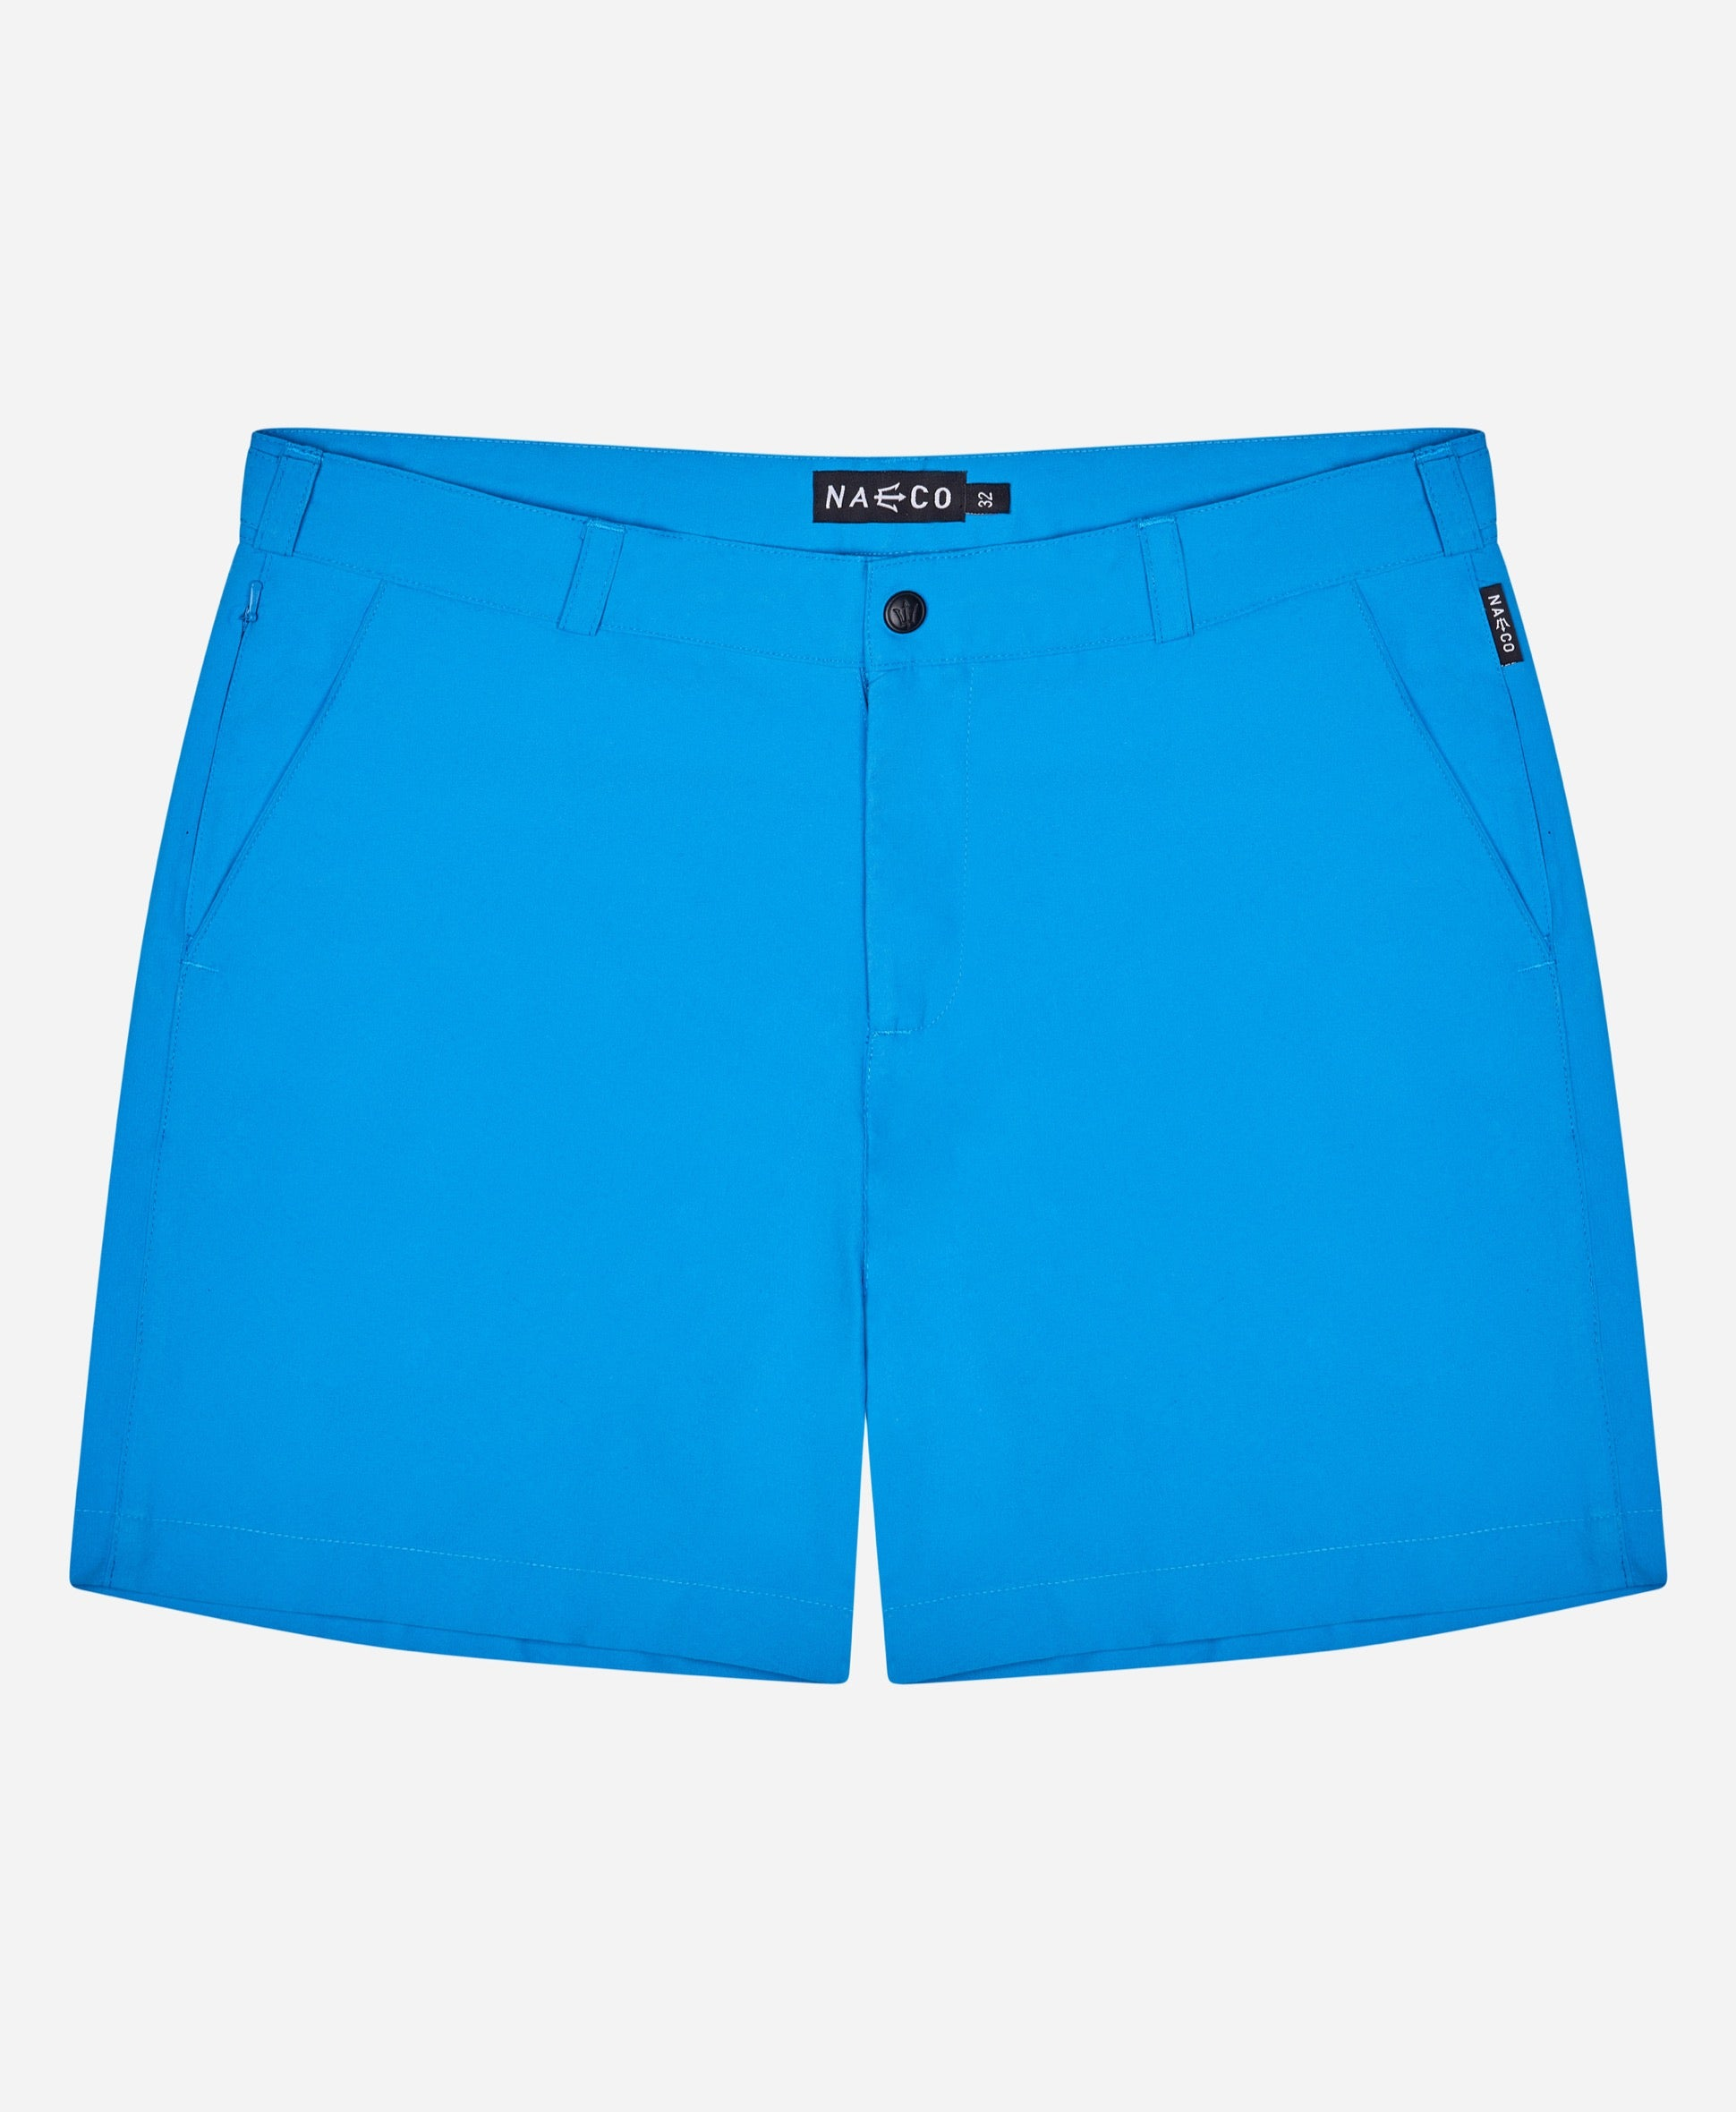 Tailored Original Swim Shorts - Sea Blue